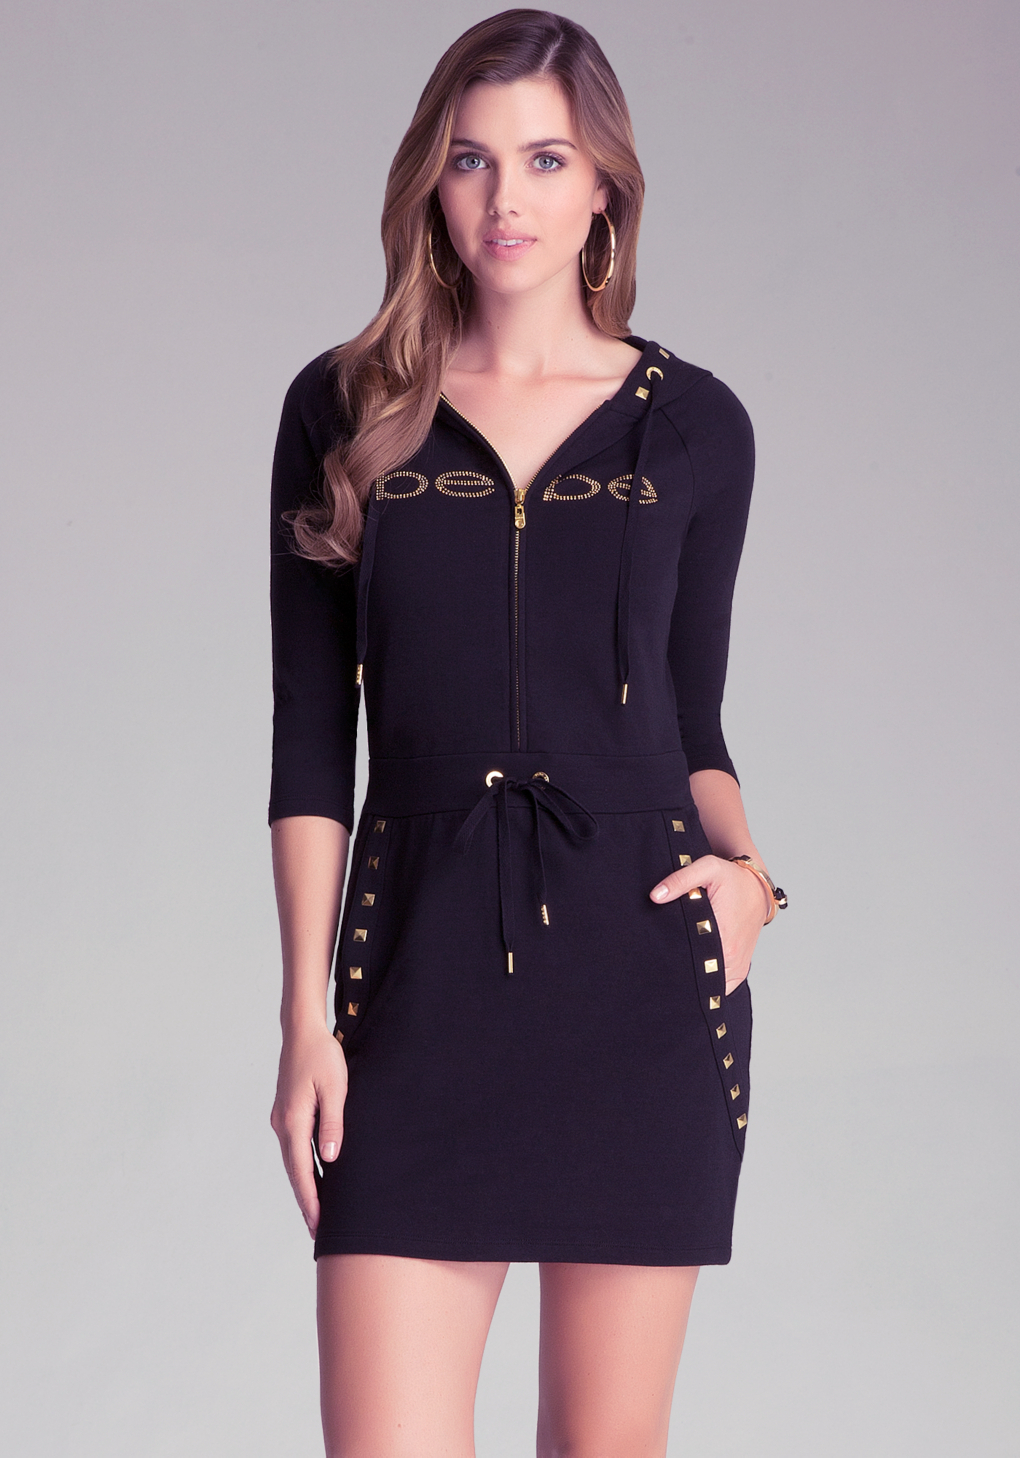 a2059e2e5c3 Lyst - Bebe Studded Logo Hoodie Tunic in Black